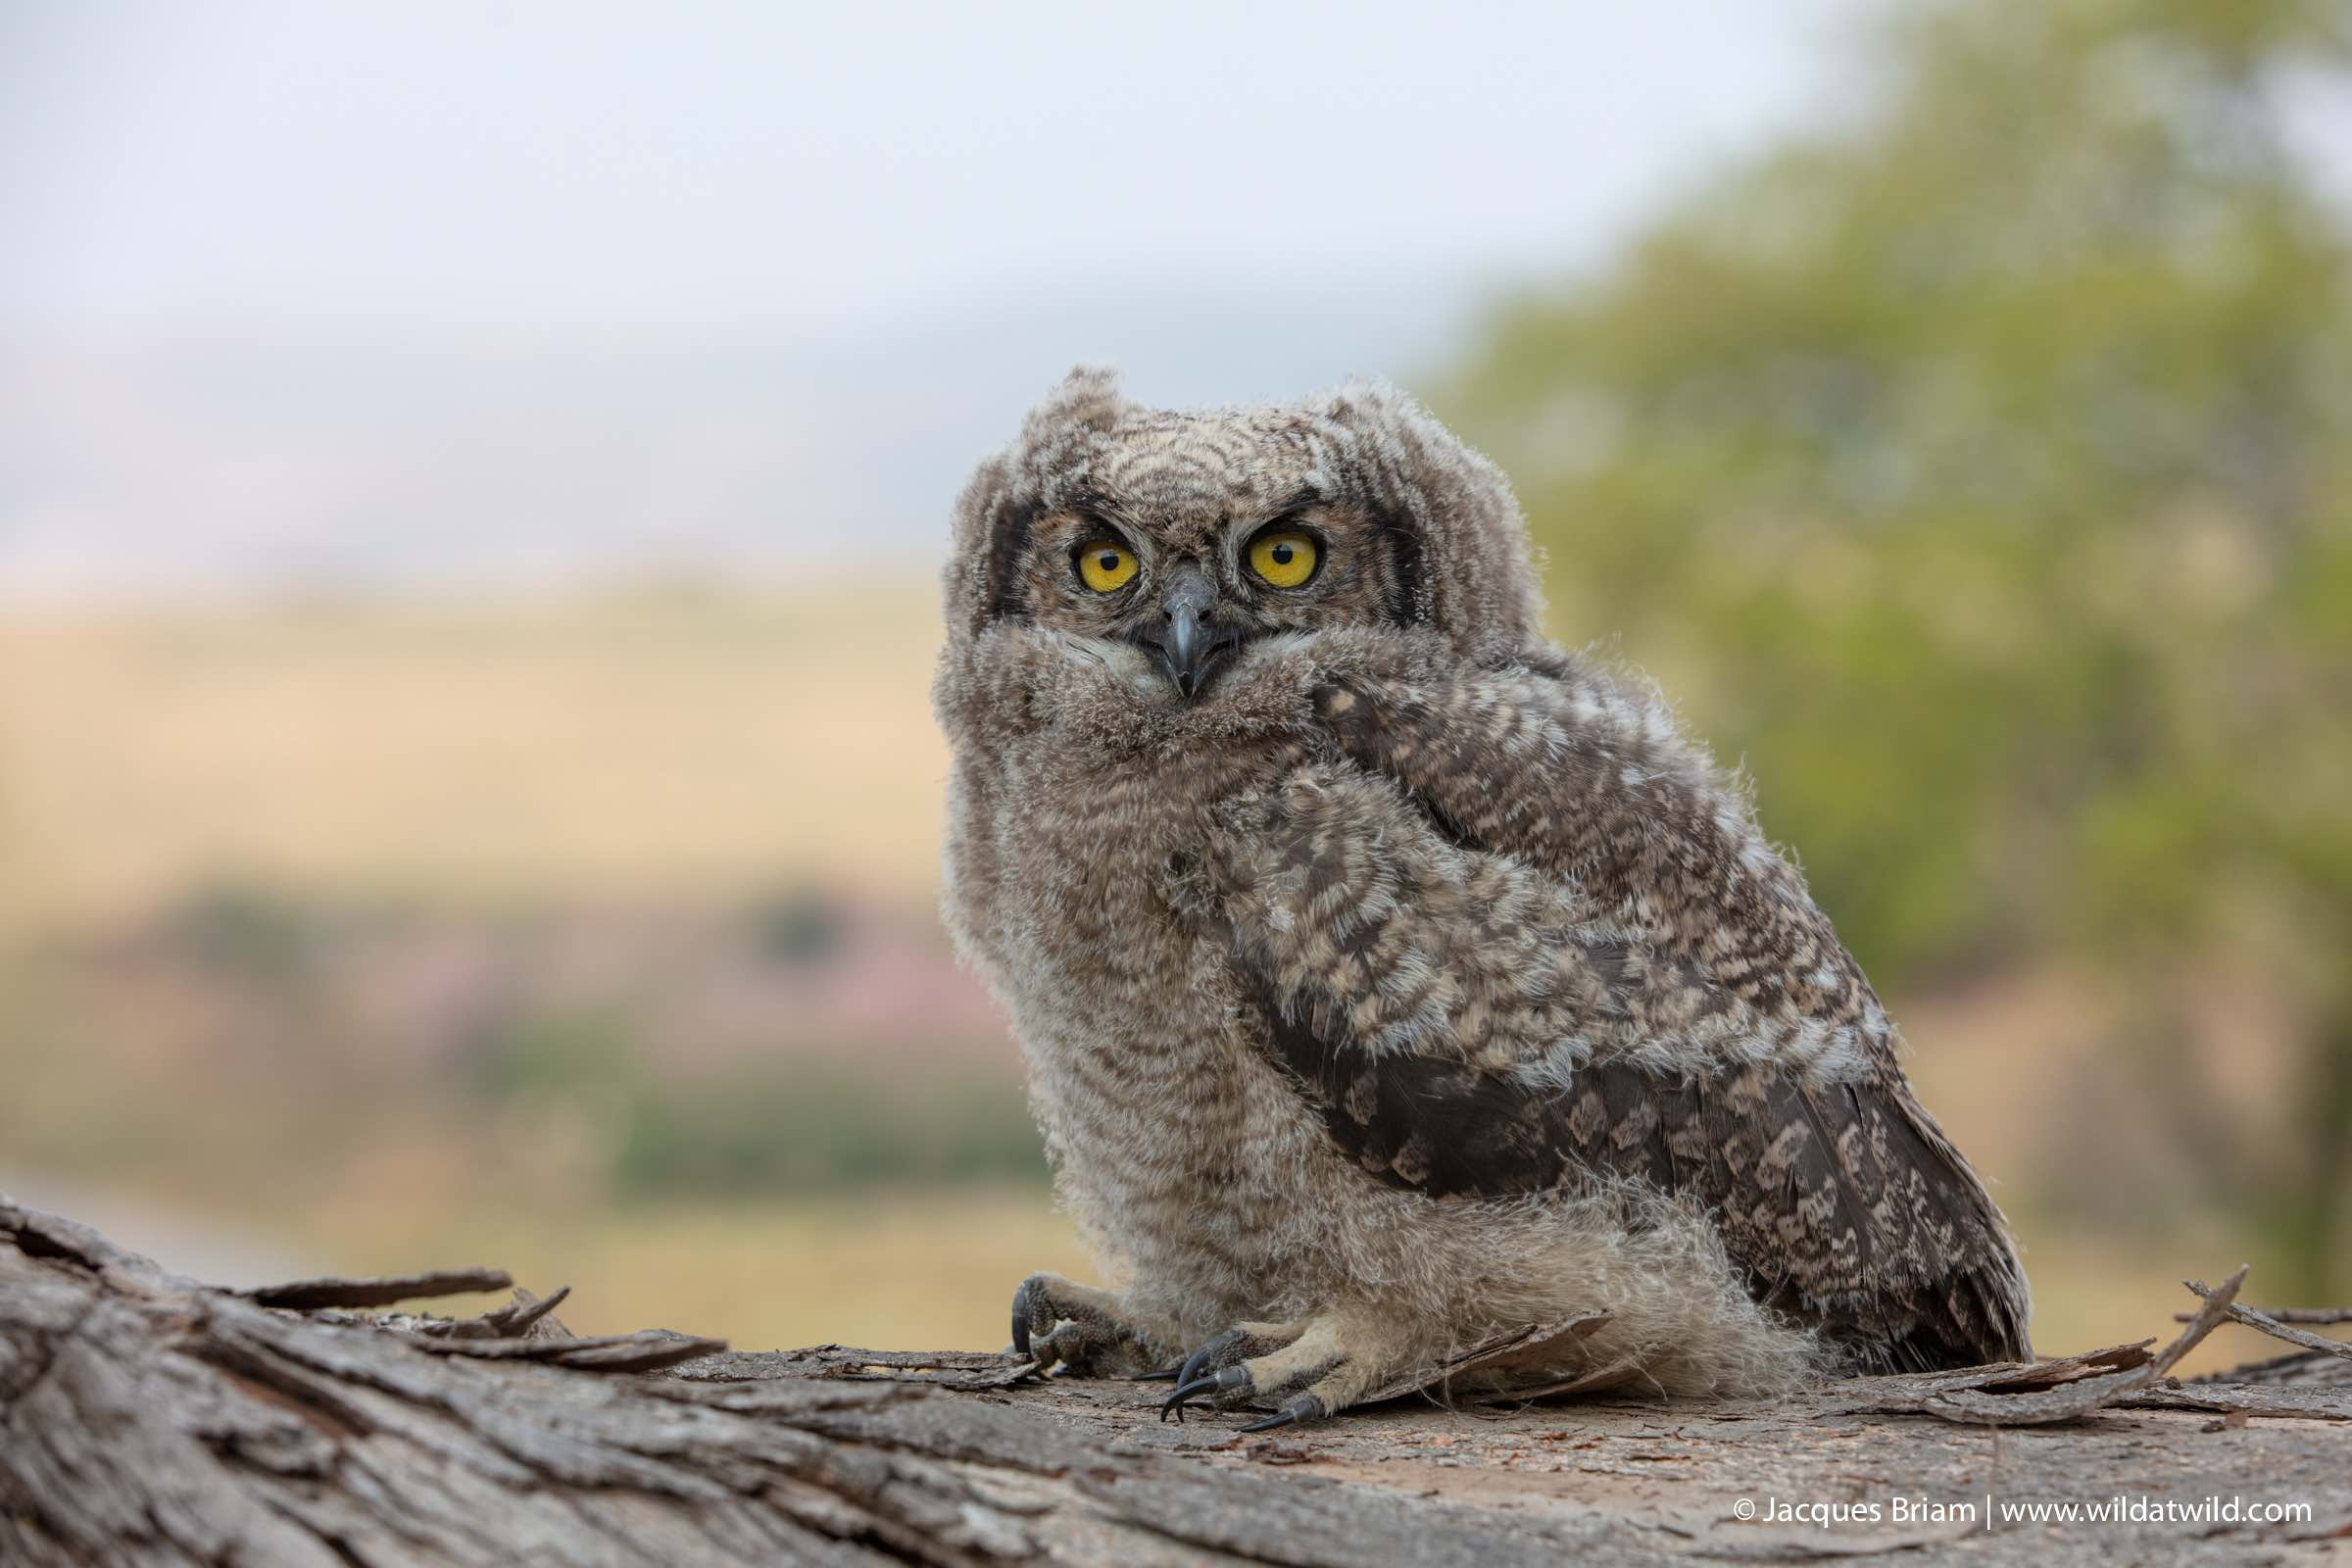 In the coming weeks, this Spotted Eagle-Owl chick should be able to fly and begin fending for itself.